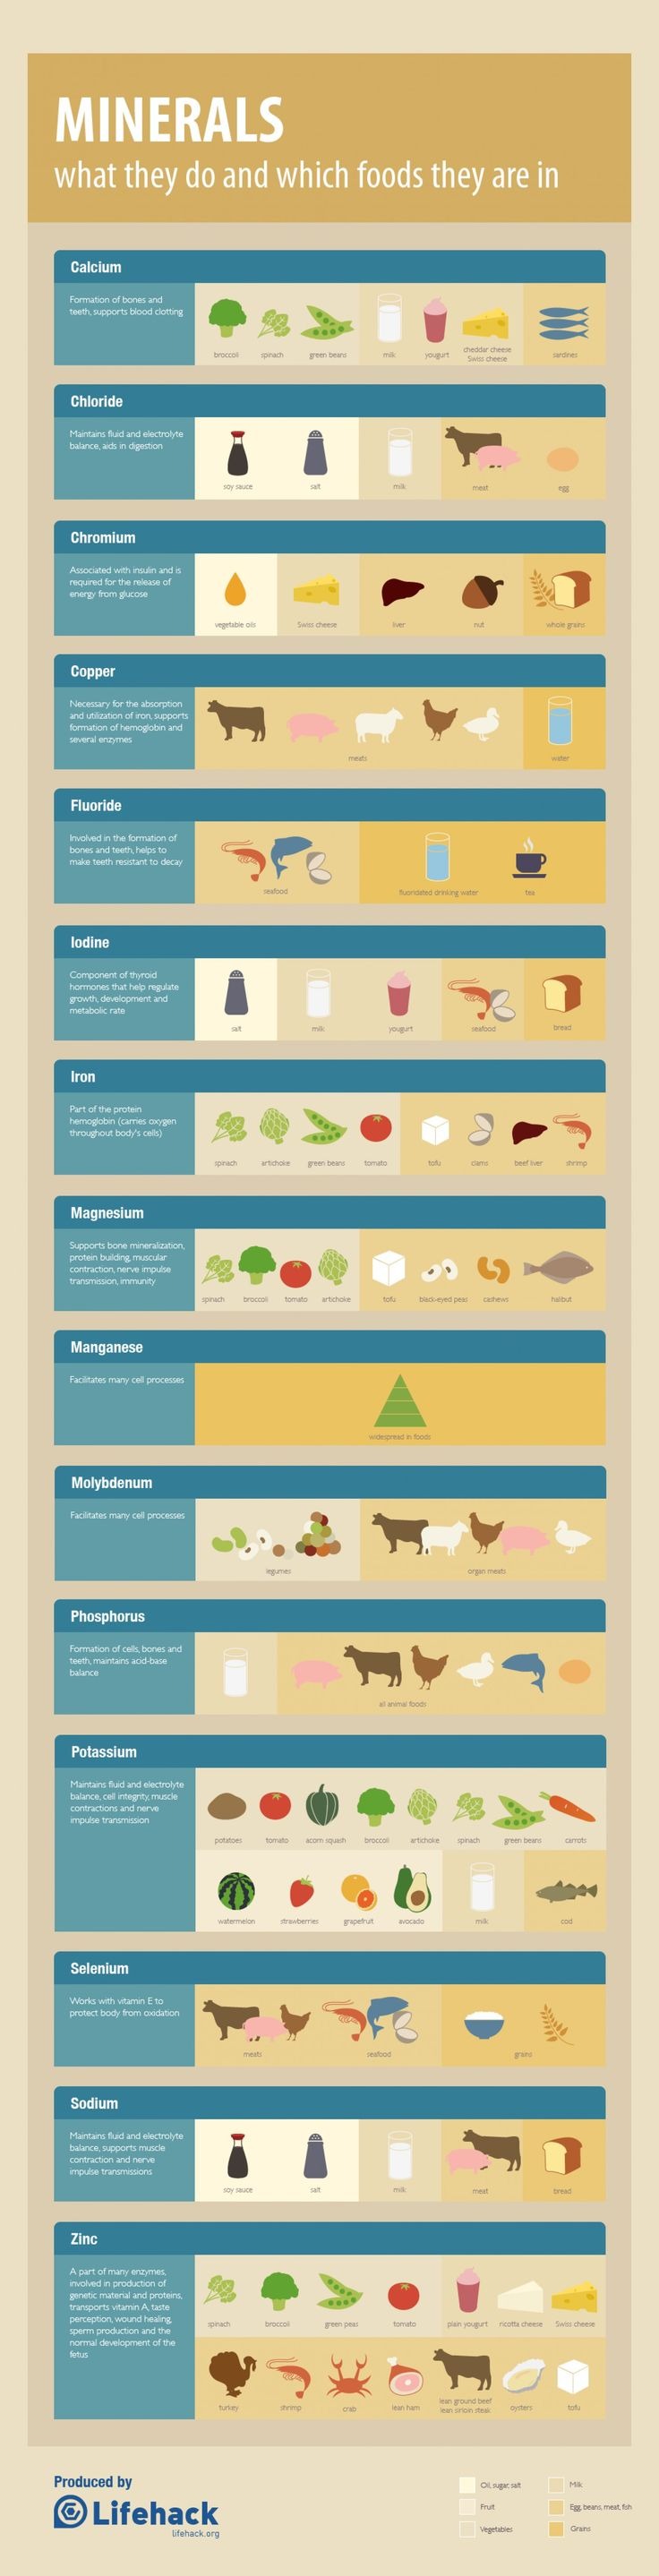 Everything You Need to Know About Minerals - We know that taking the right carbs, protein, healthy fats and vitamins are vital, but we rarely talk about minerals. Taking in enough and the right type of minerals is also important. This cheat sheet will explain everything you need to know about minerals and which foods contain them    - If you like this pin, repin it and follow our boards :-)  #FastSimpleFitness - www.facebook.com/FastSimpleFitness